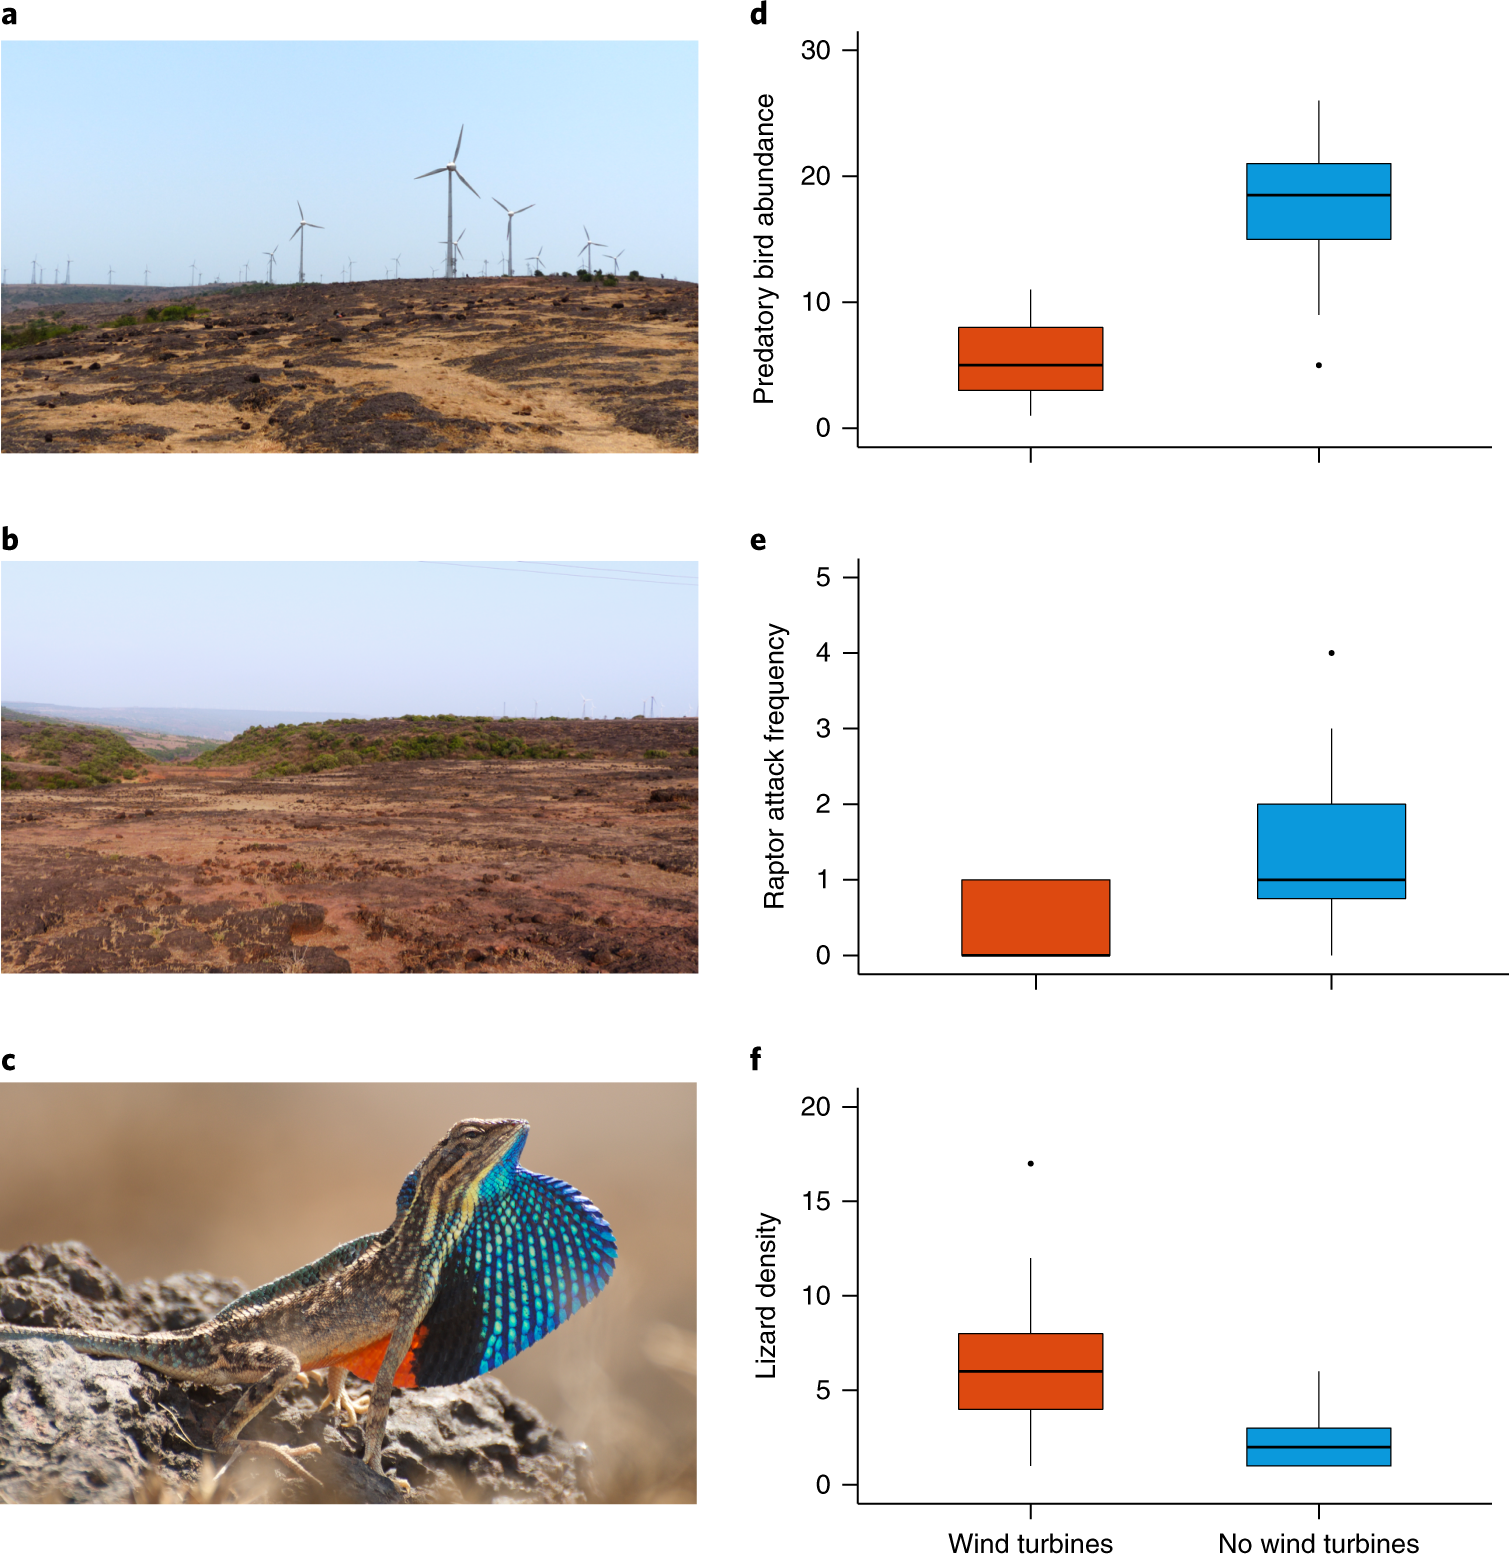 Wind farms have cascading impacts on ecosystems across trophic